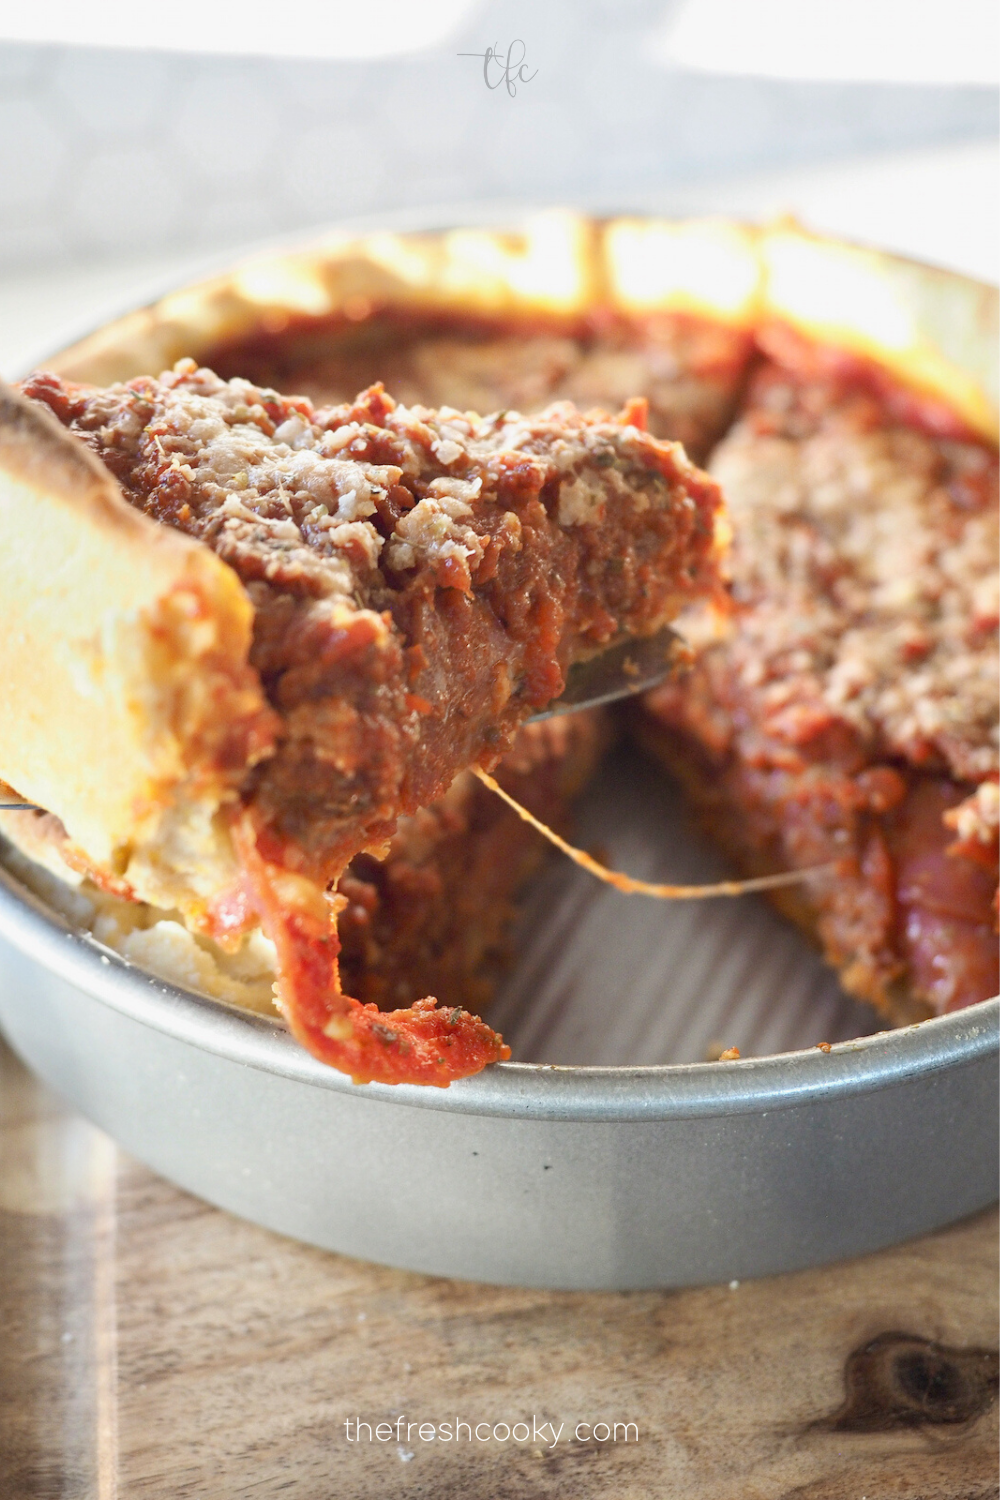 Pulling out slice of deep dish pan pizza.